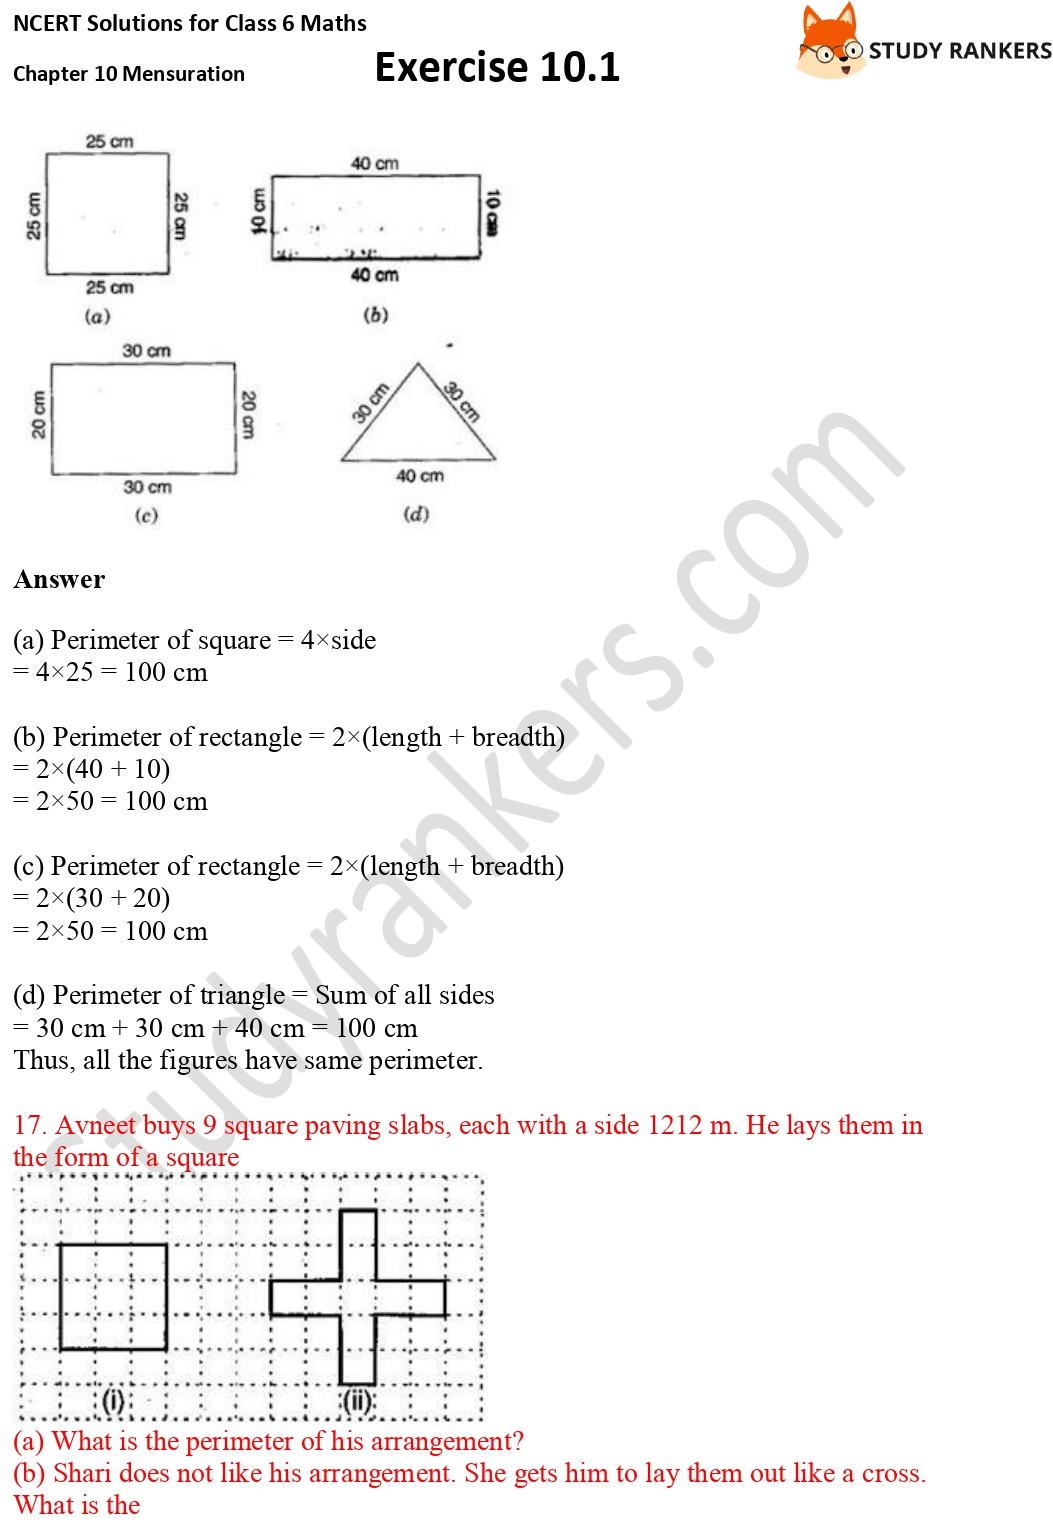 NCERT Solutions for Class 6 Maths Chapter 10 Mensuration Exercise 10.1 Part 7